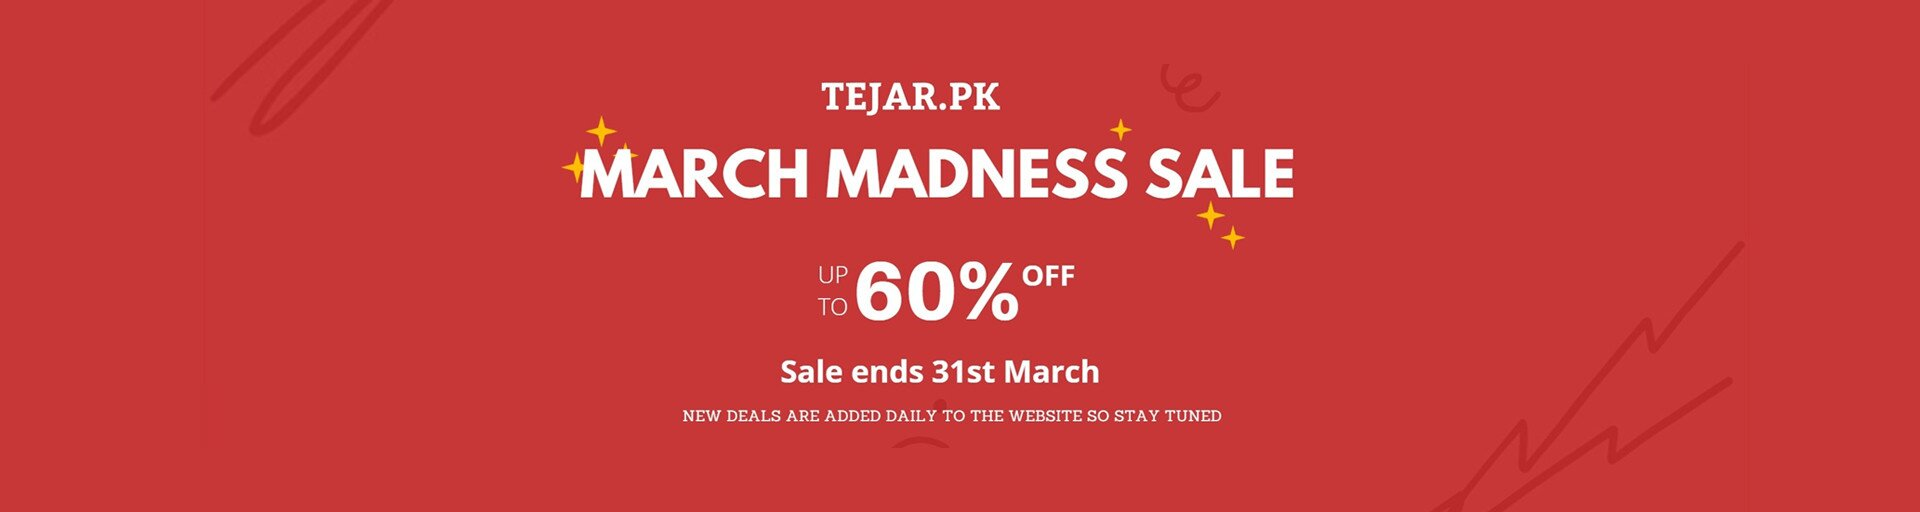 March madness sale 2021